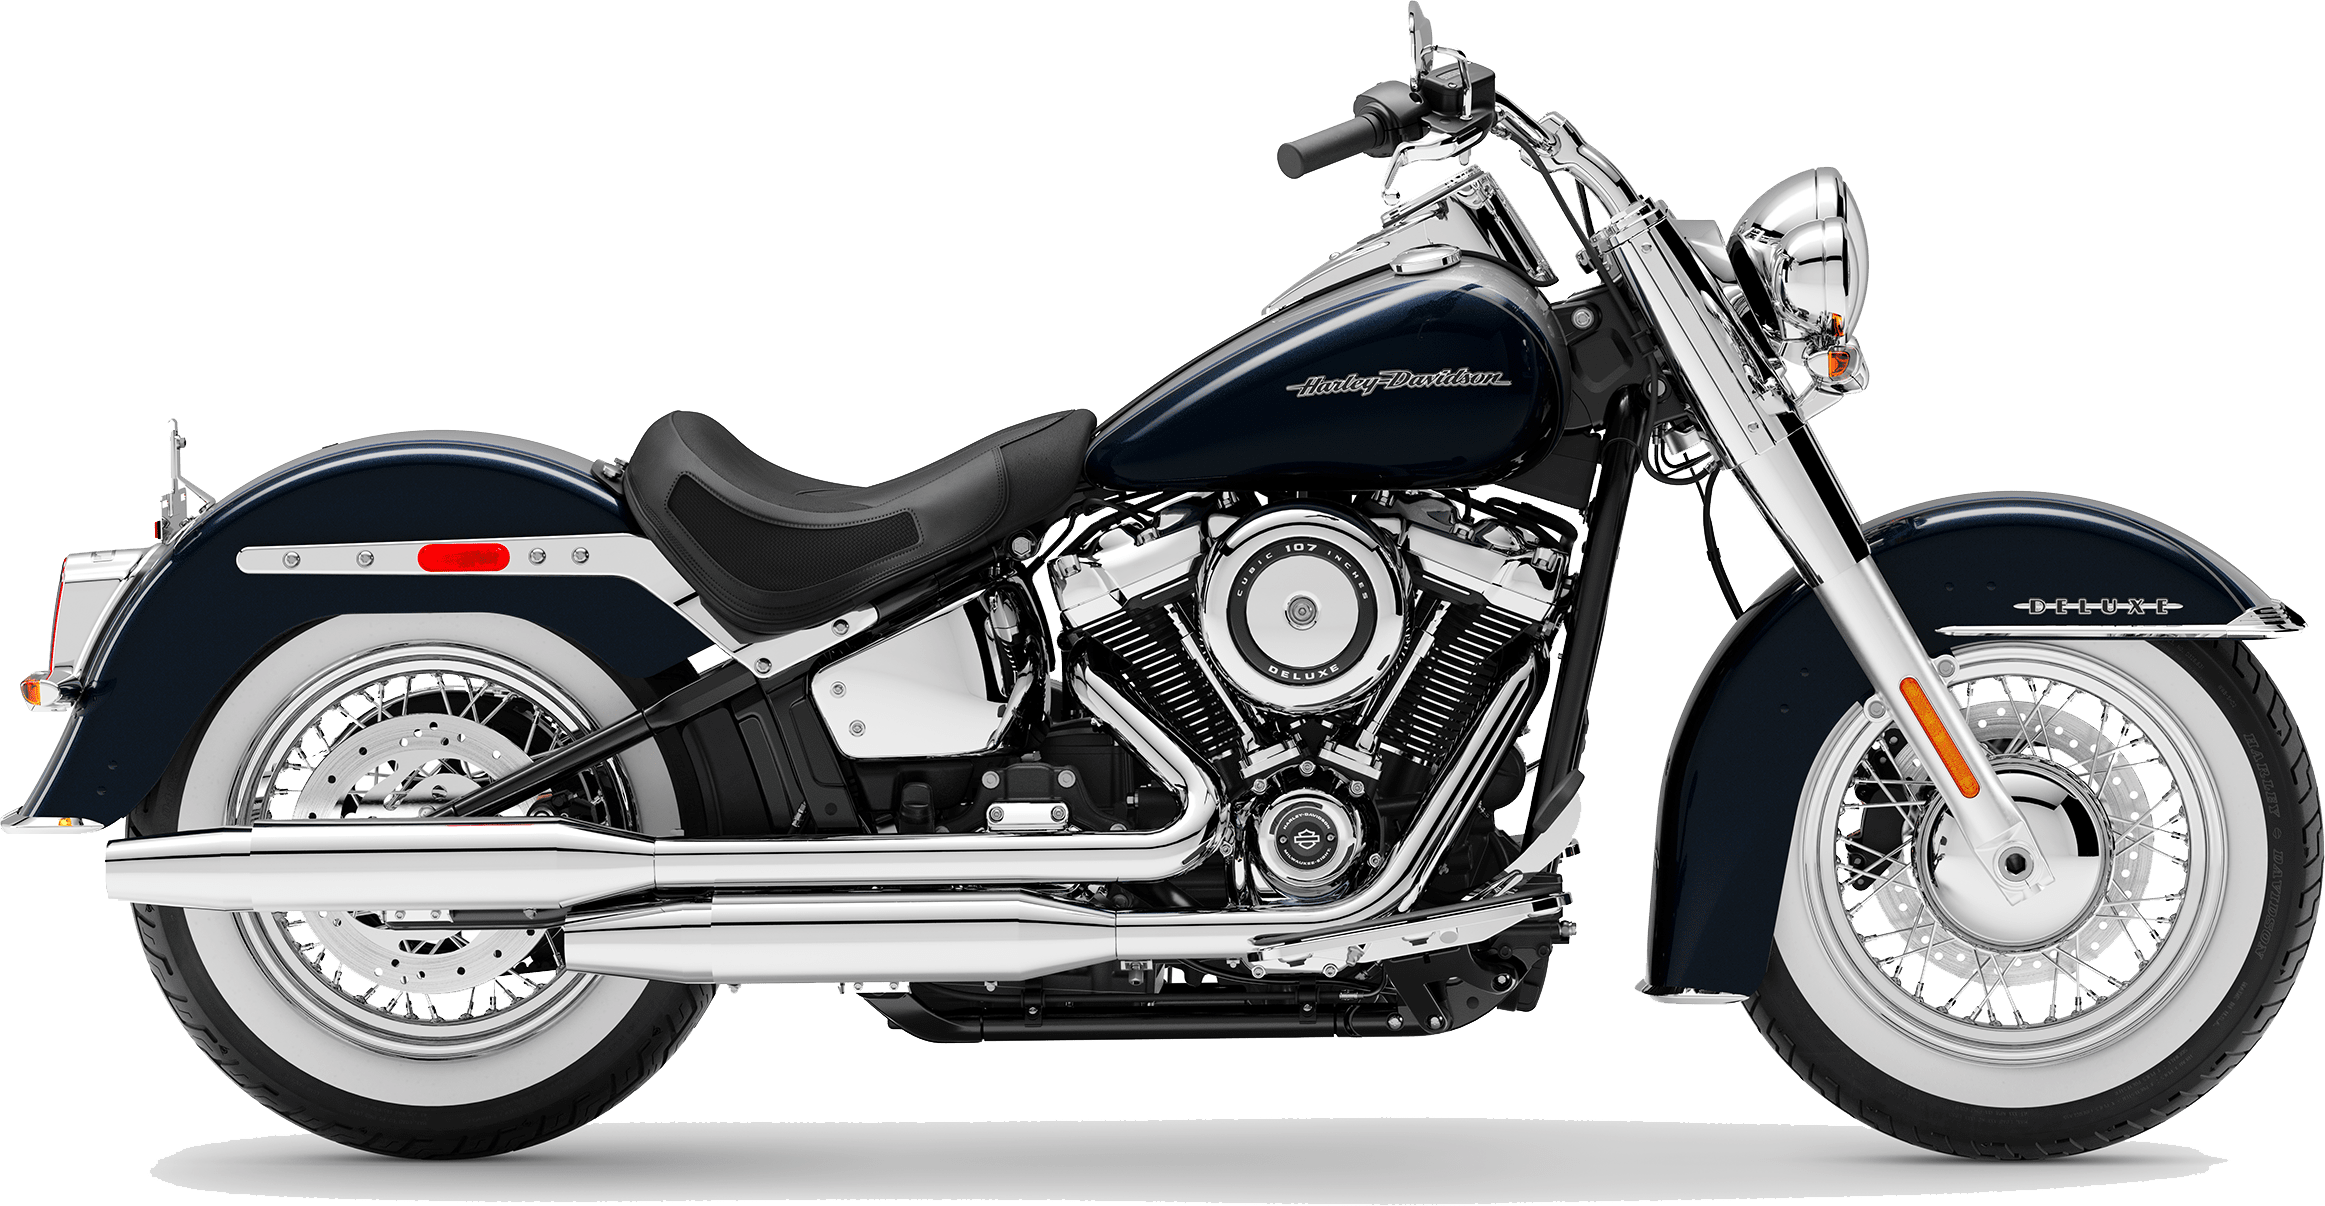 2019 Harley-Davidson Softail Deluxe Midnight Blue / Barracuda Silver